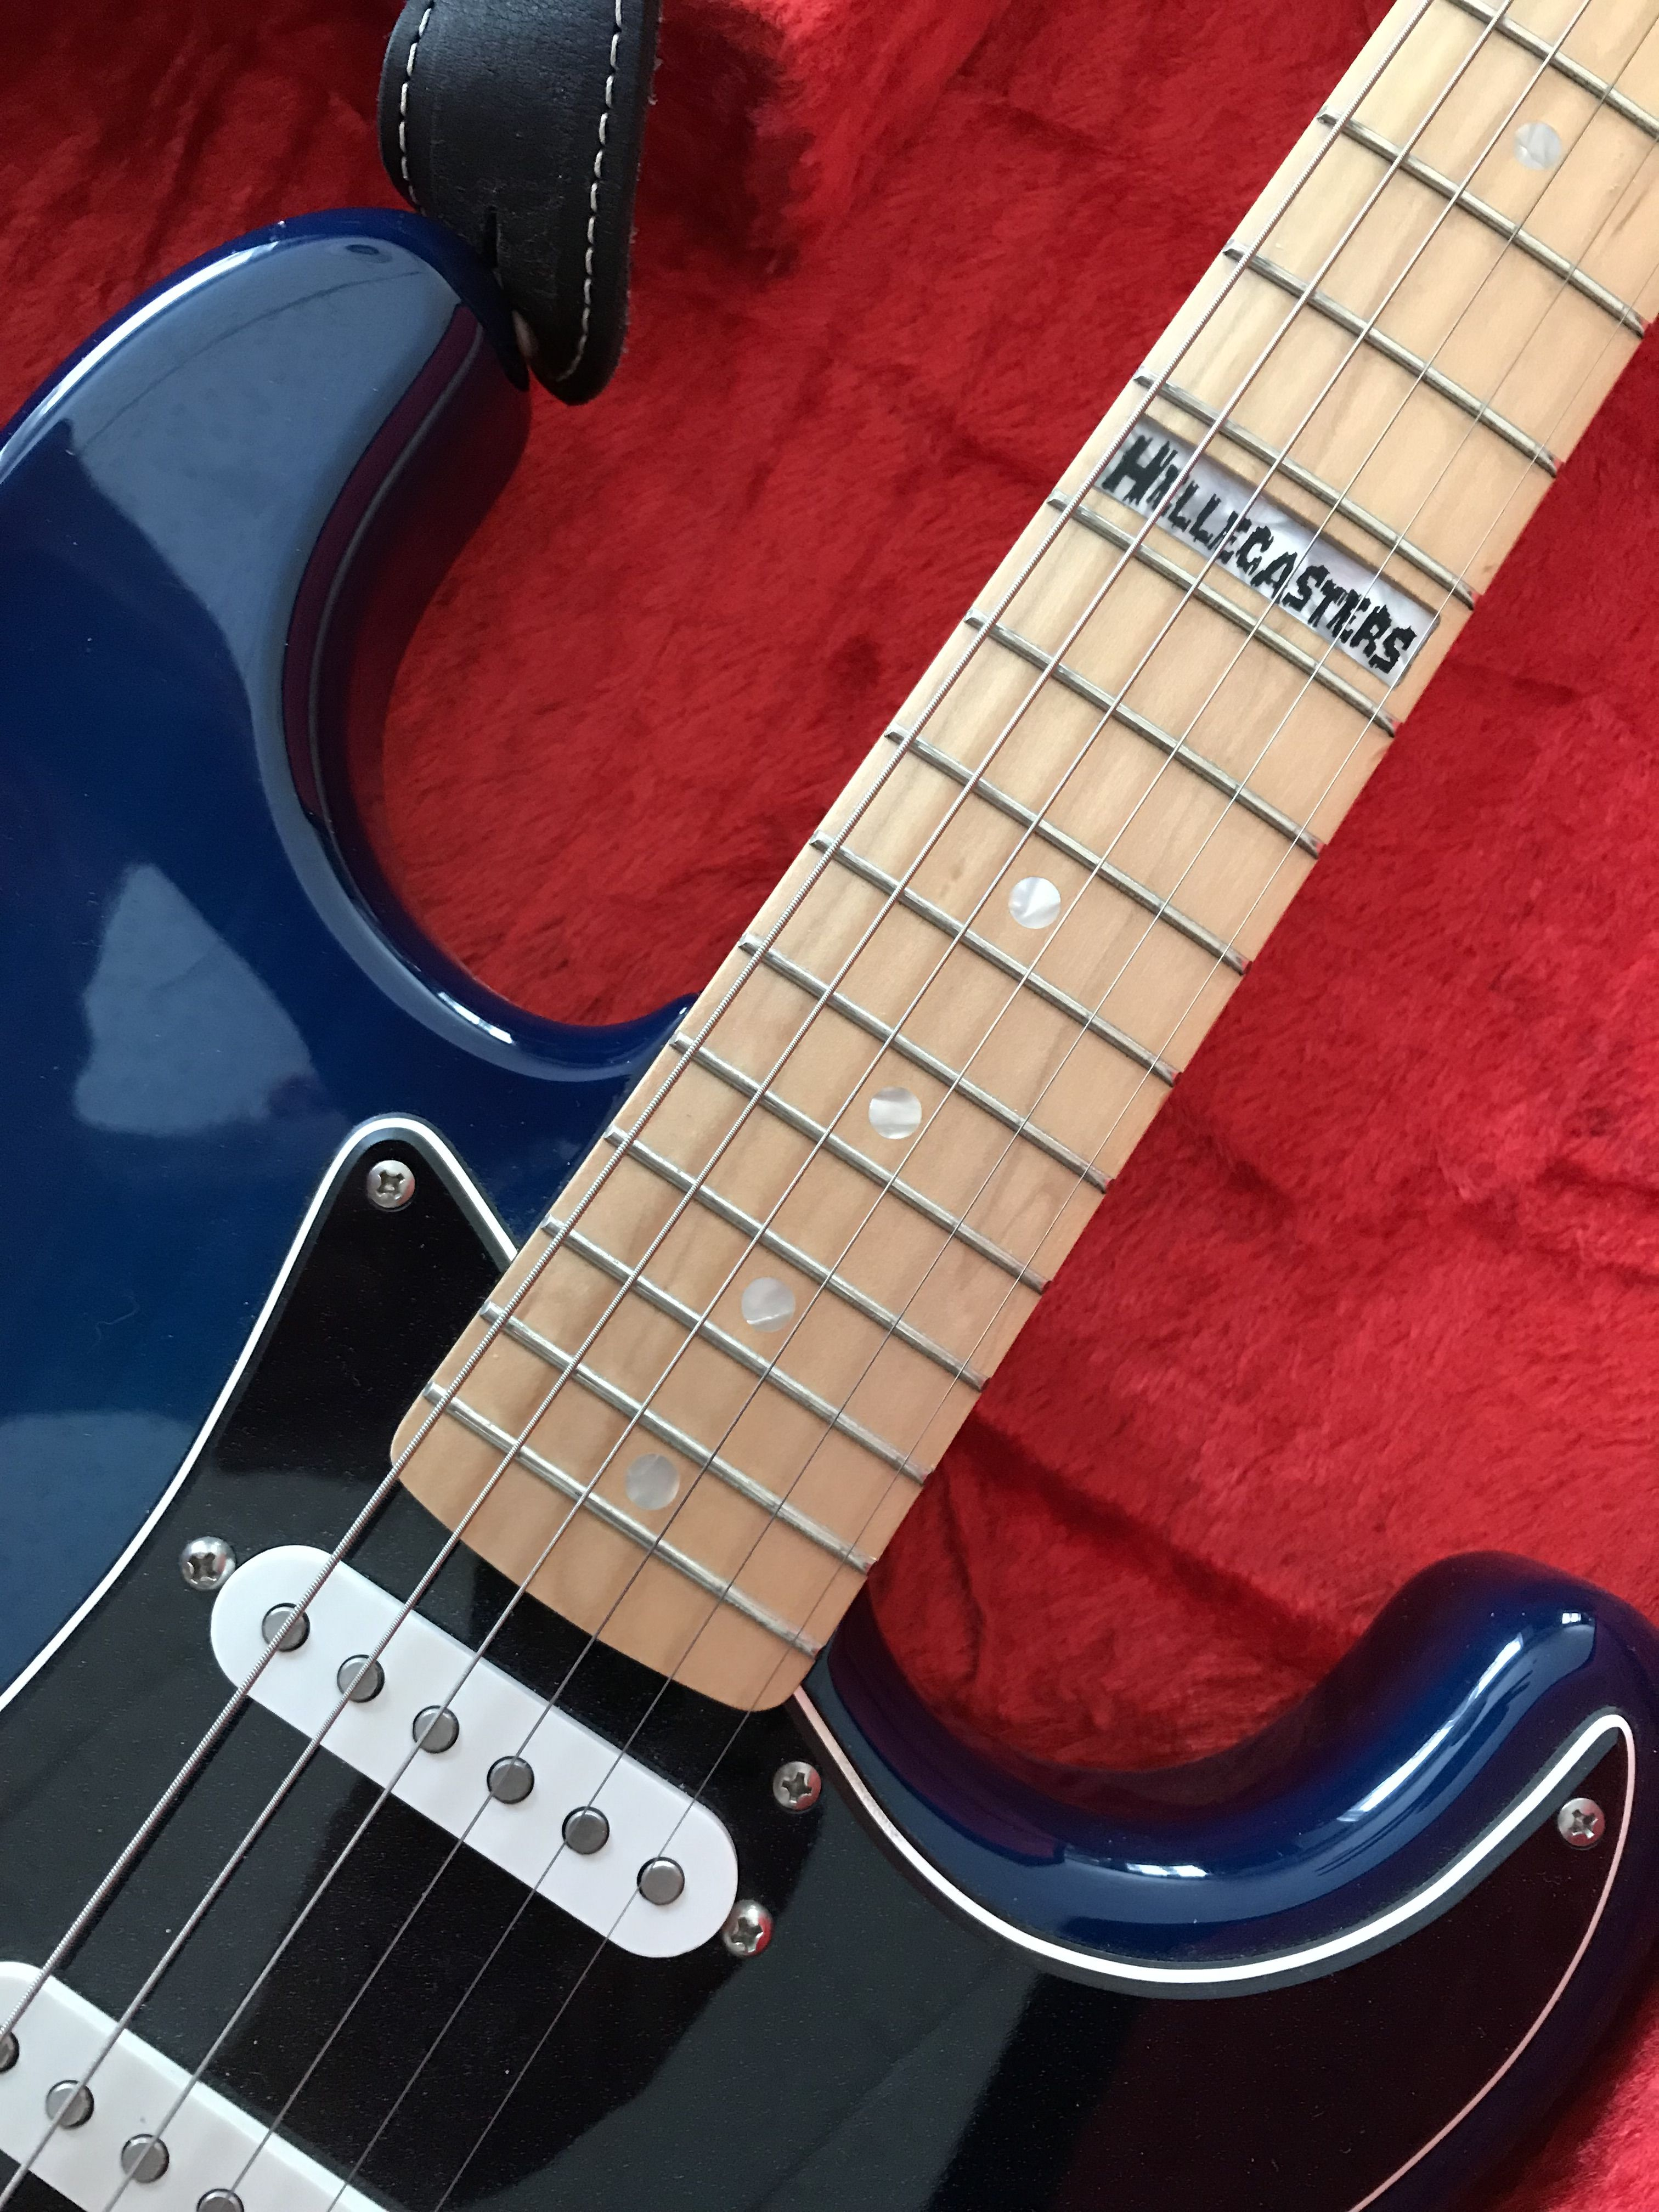 Fender Jerry Donahue Hellecasters Signature Stratocaster Guitar Electric Guitar Music Instruments